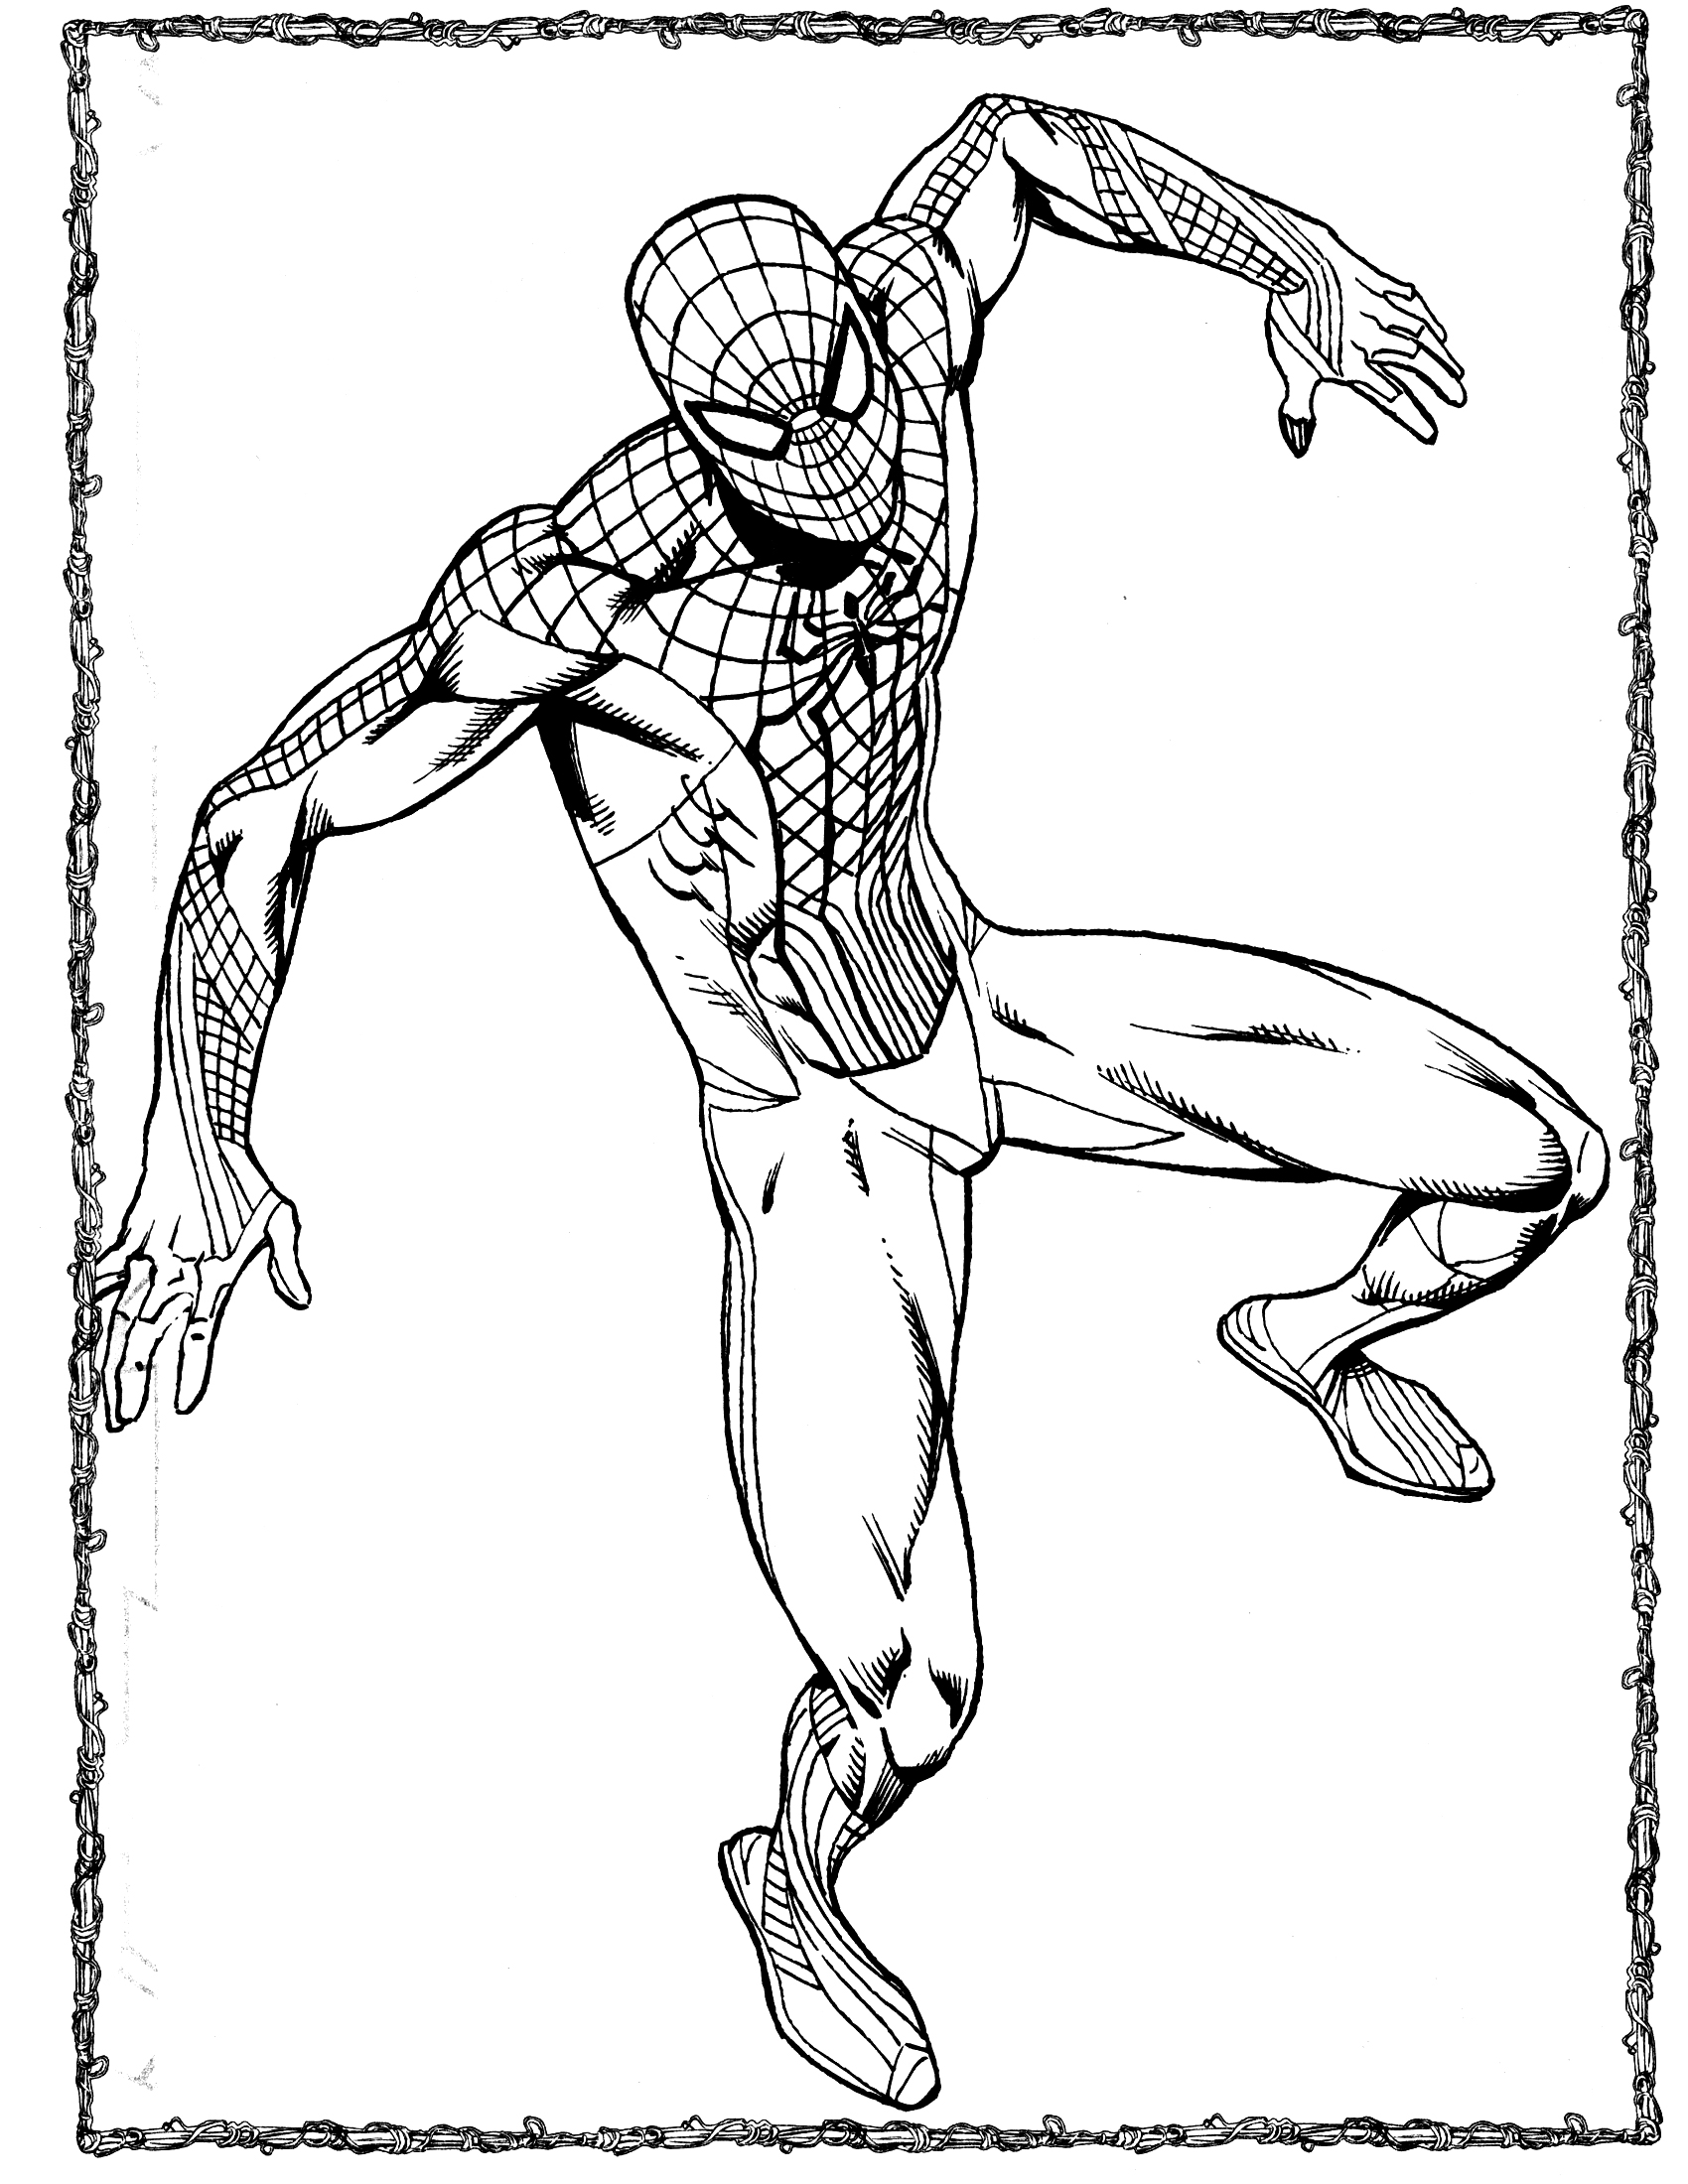 Disegno di spiderman da colorare for Disegni spiderman da colorare gratis